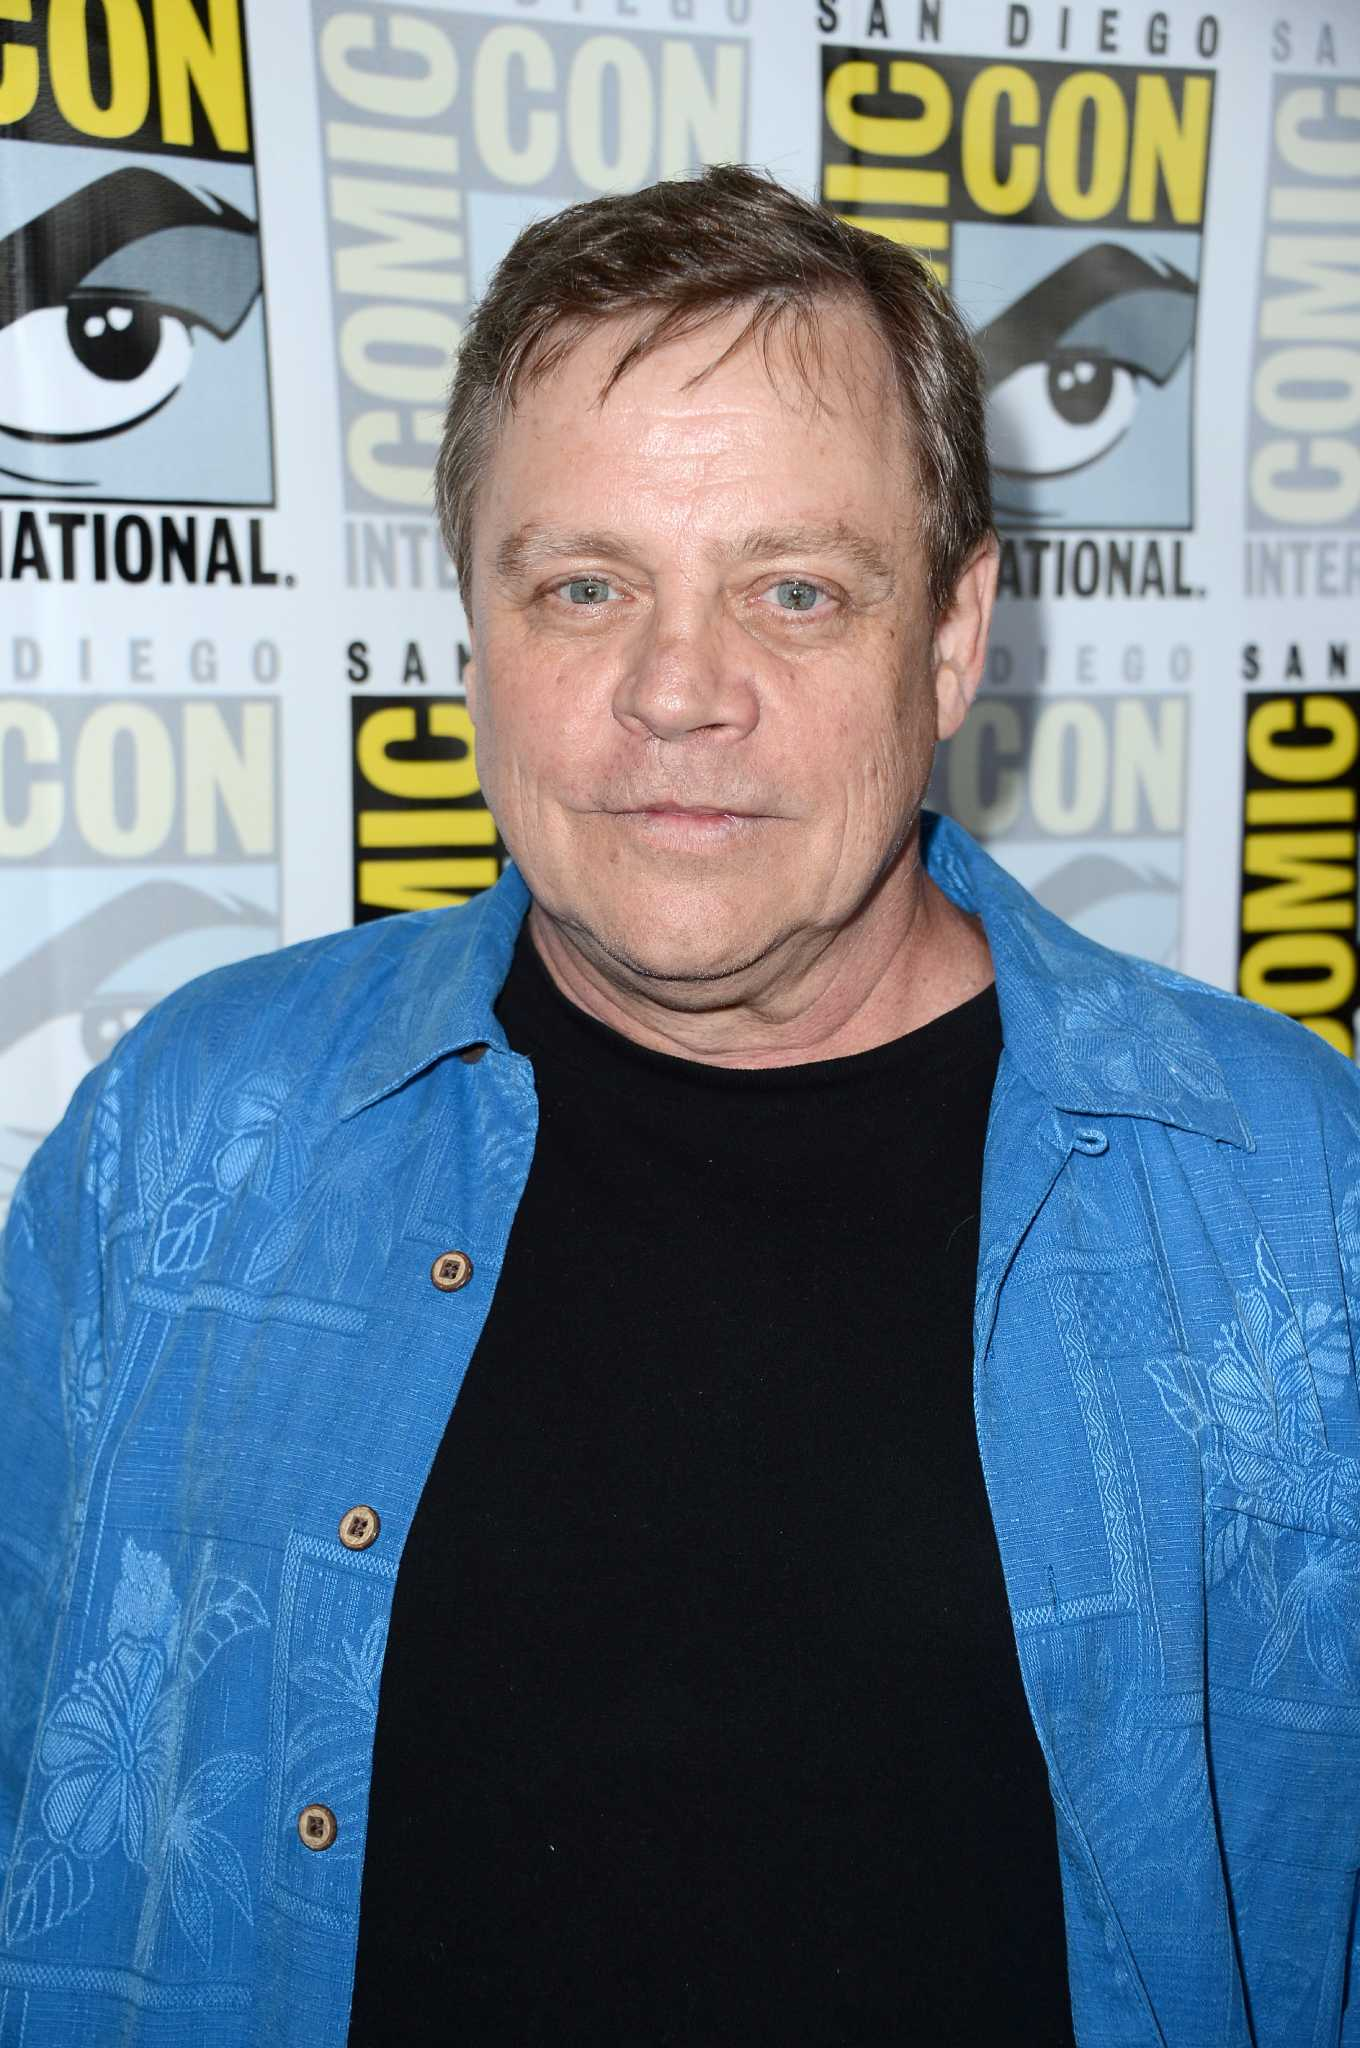 Star Wars The Force Awakens Star Mark Hamill Shows Off